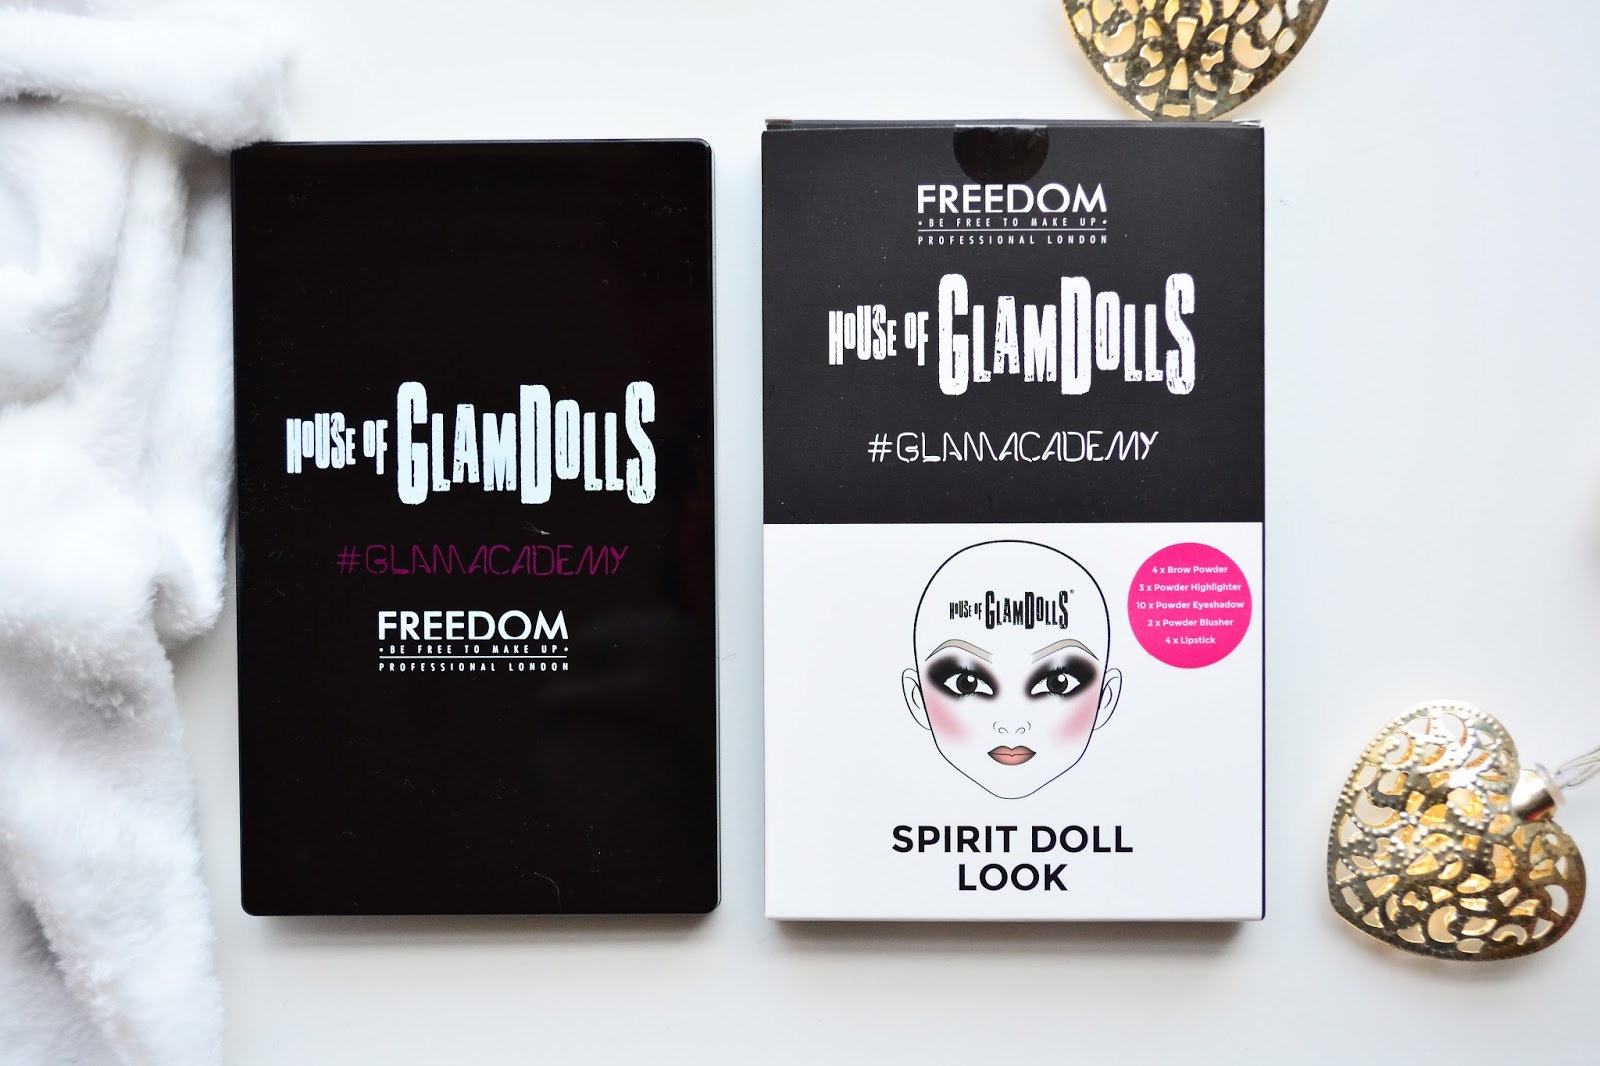 House of Glamdolls Spirit Doll Palette from Freedom Makeup, House of Glamdolls, Freedom Makeup, Palette